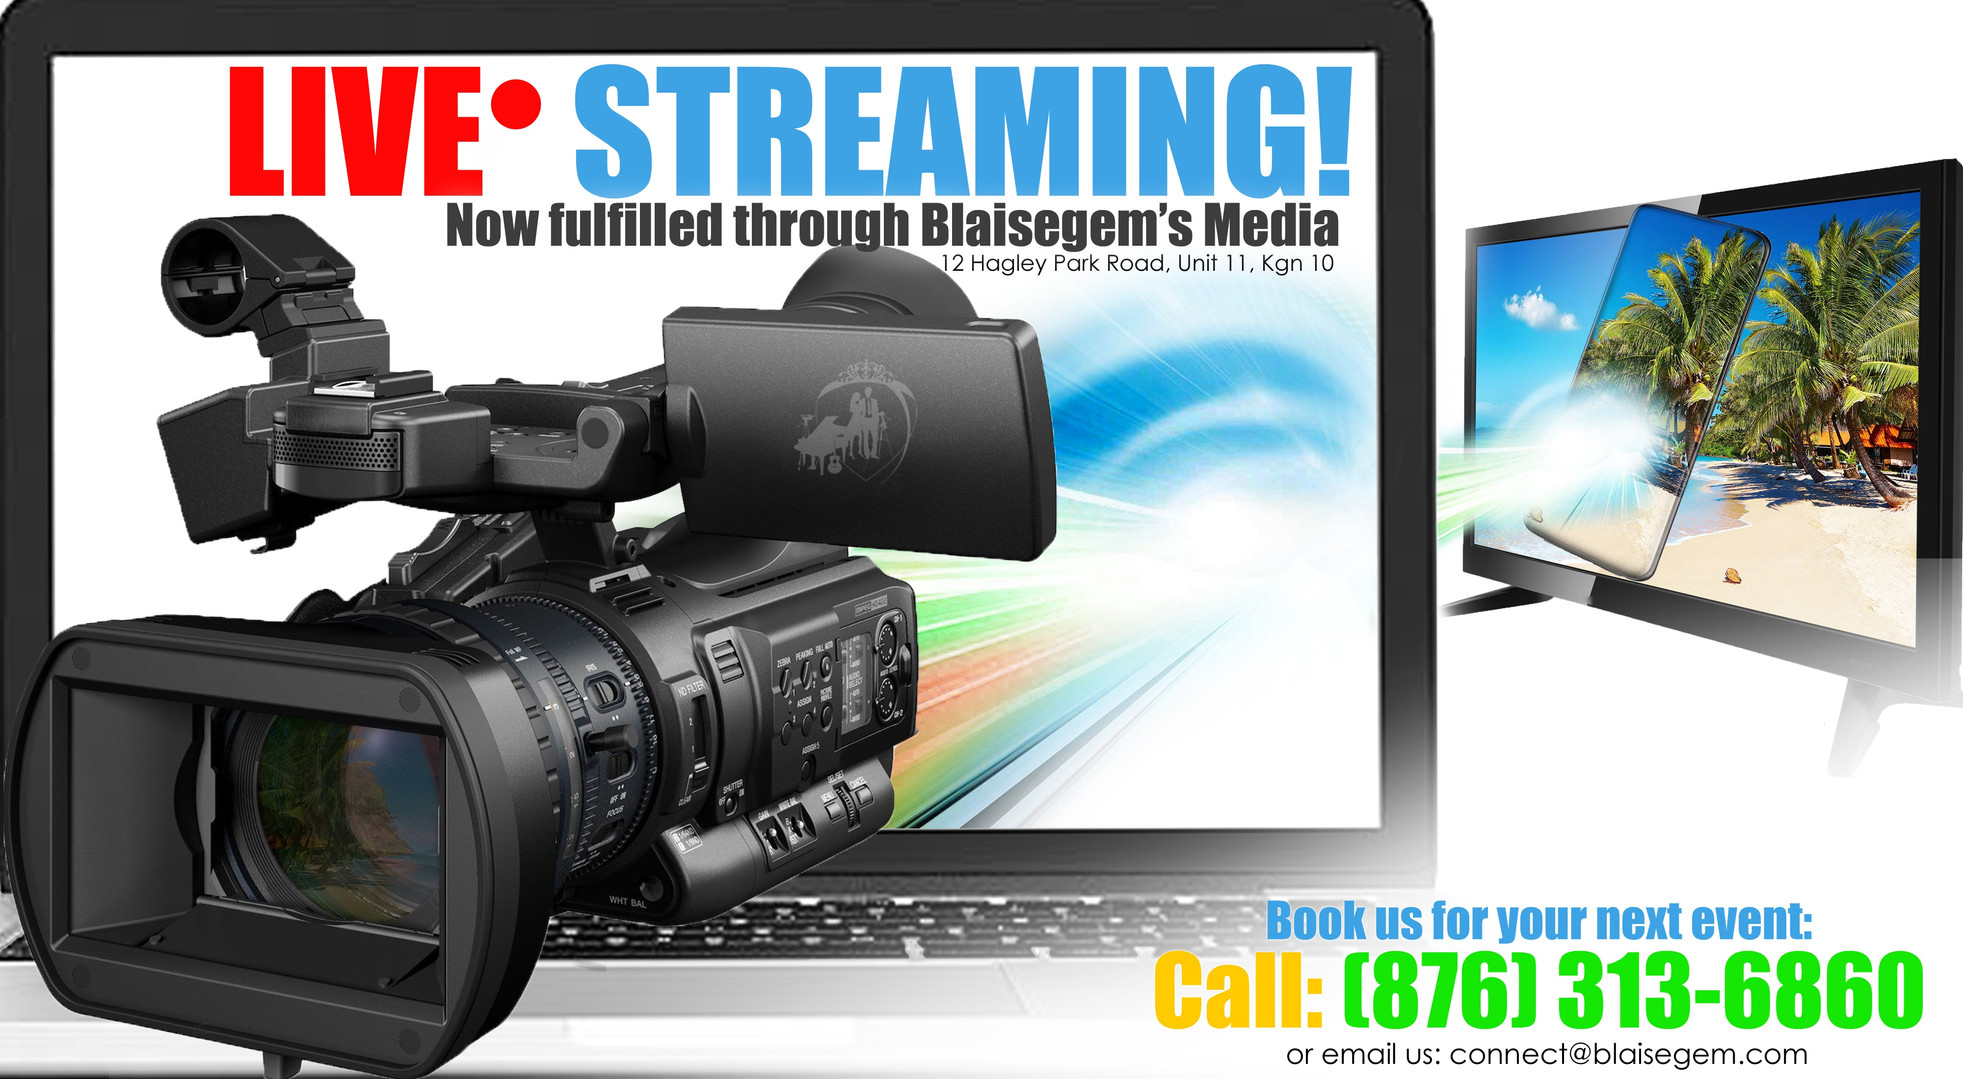 Get your events streamed live by Blaisegem Media